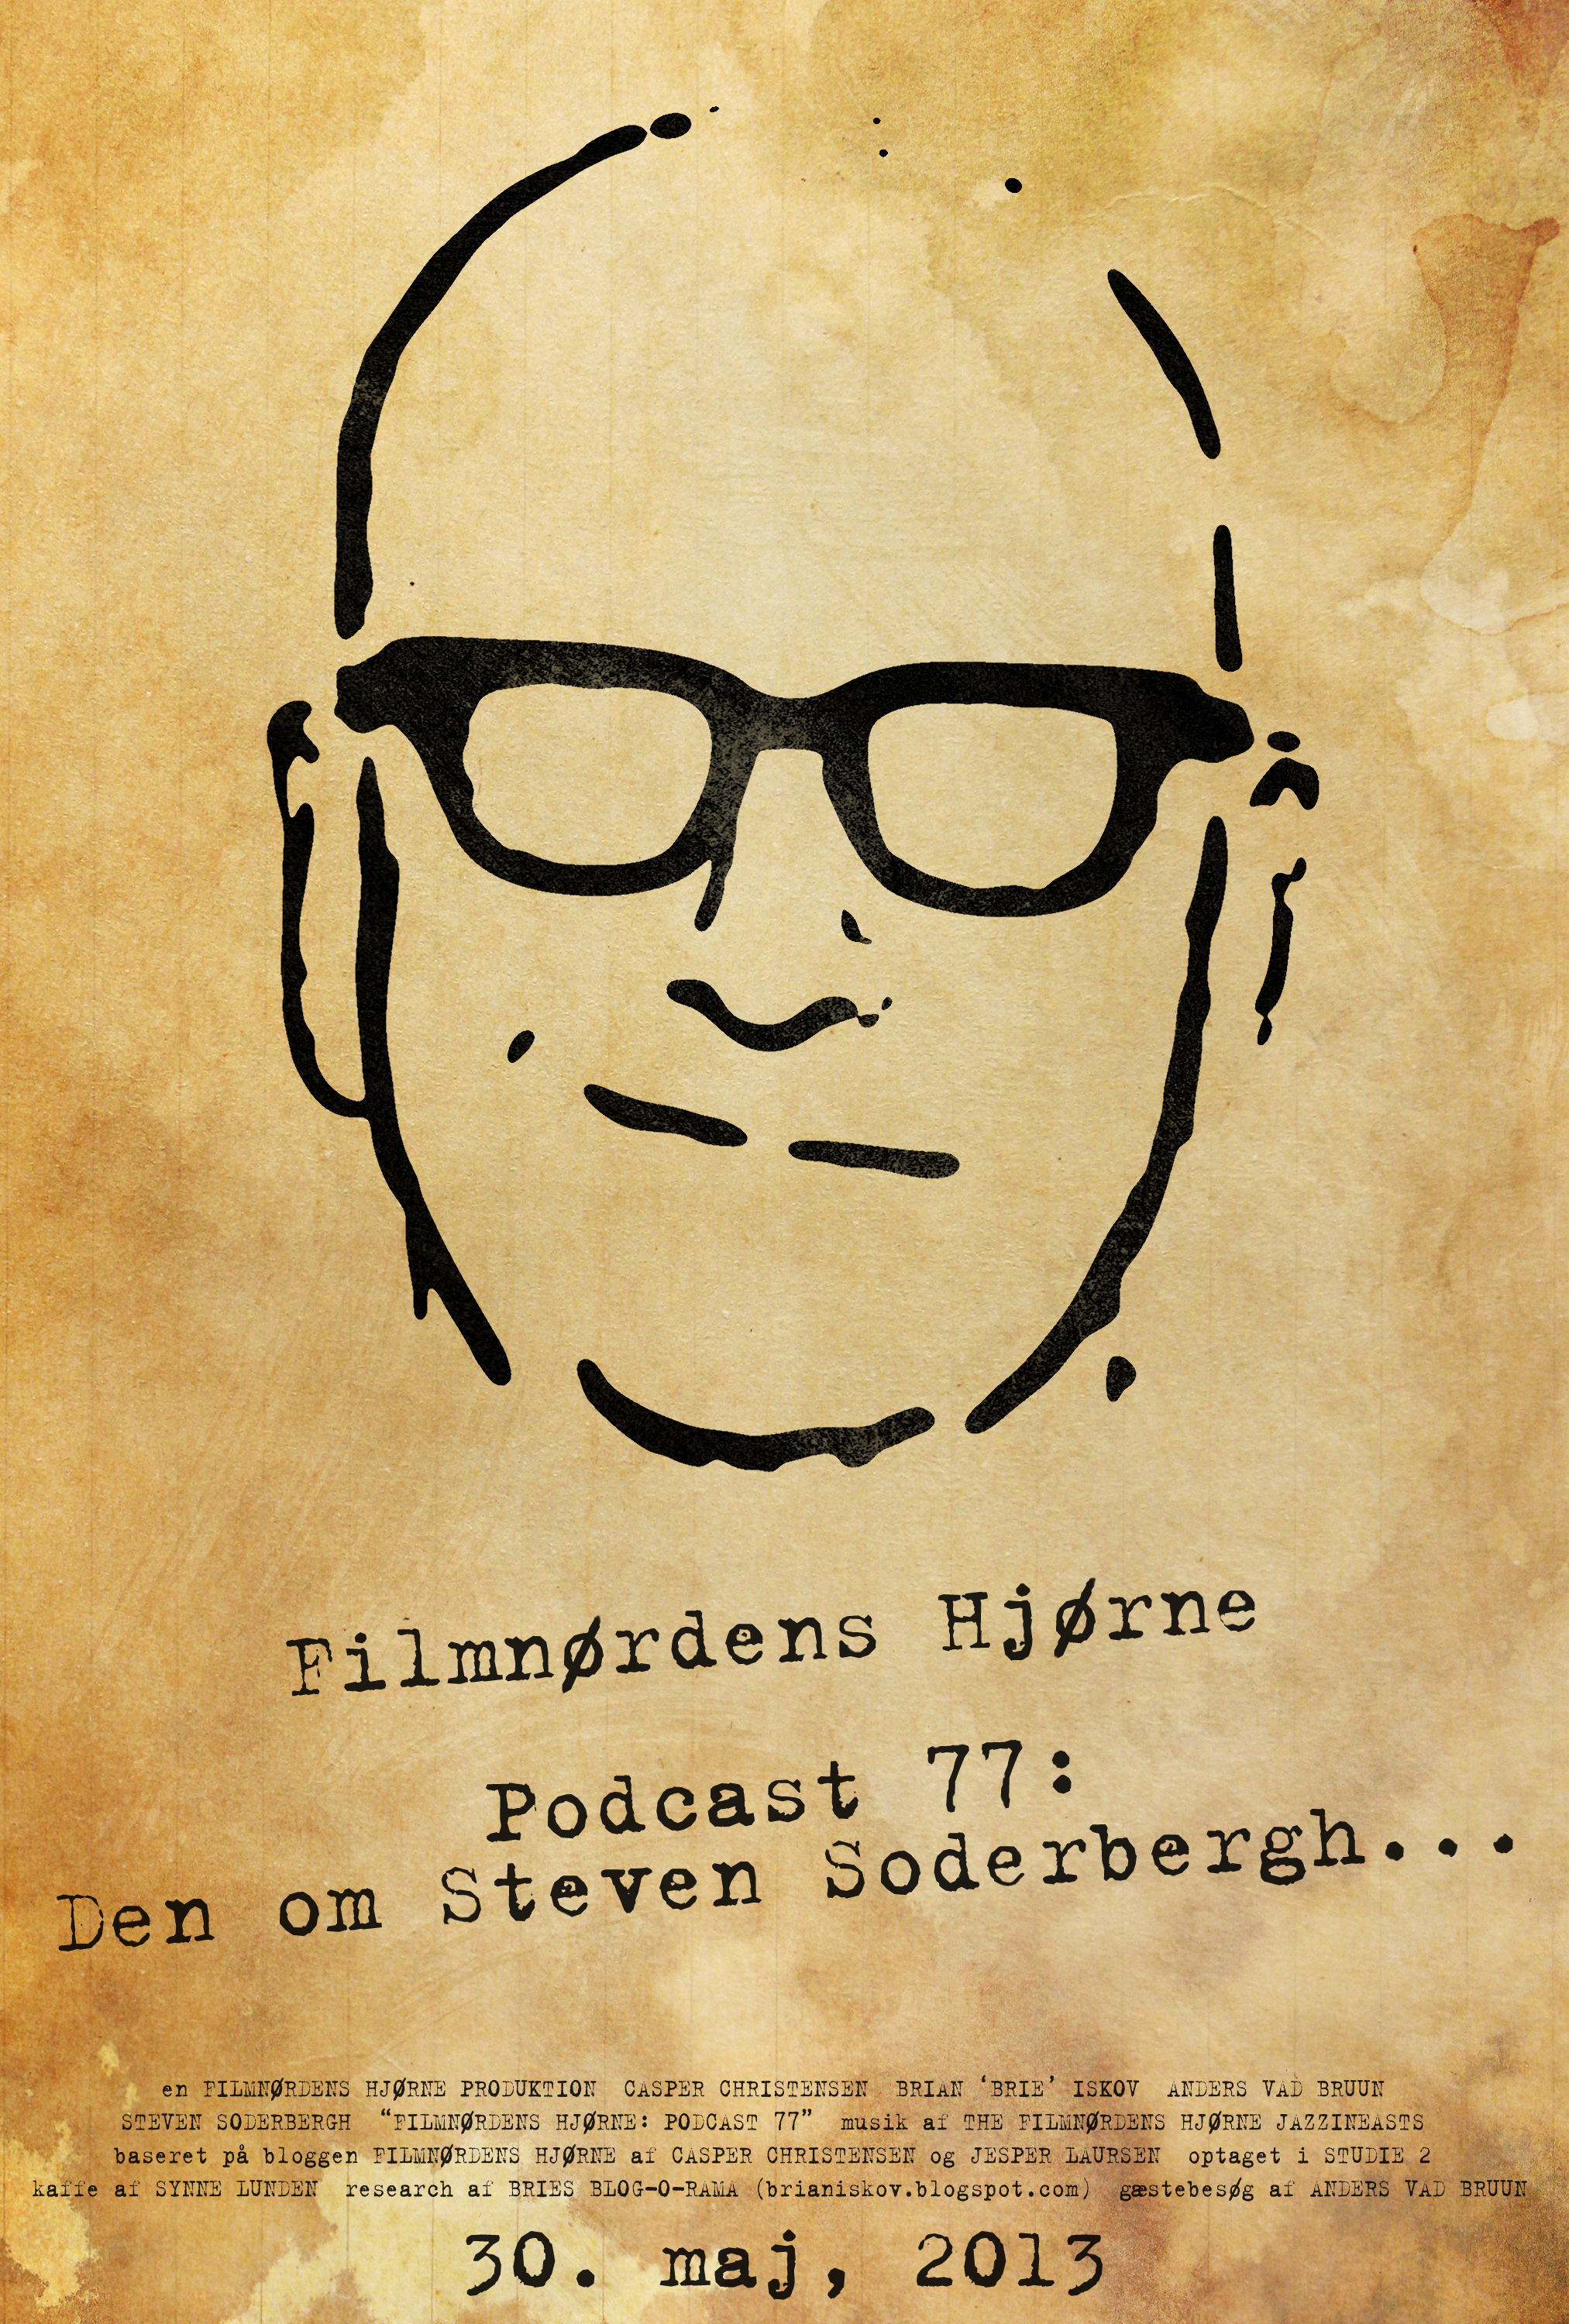 Poster-for-Podcast-771.jpg